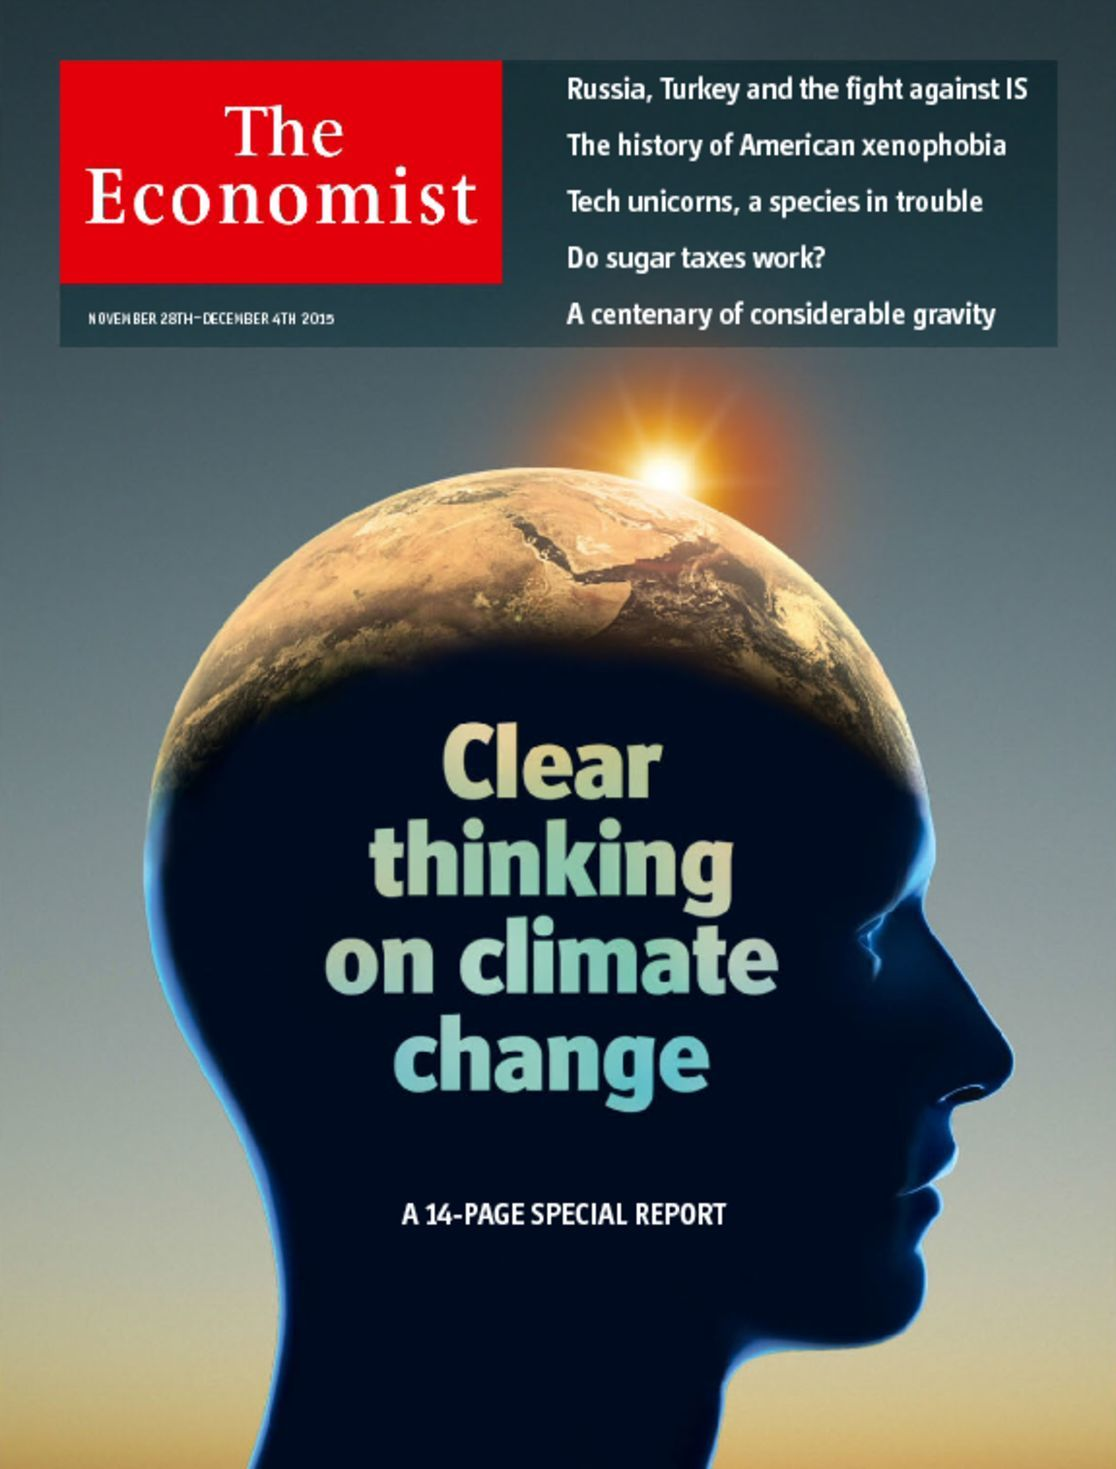 5327-the-economist-Cover-2015-December-Issue.jpg